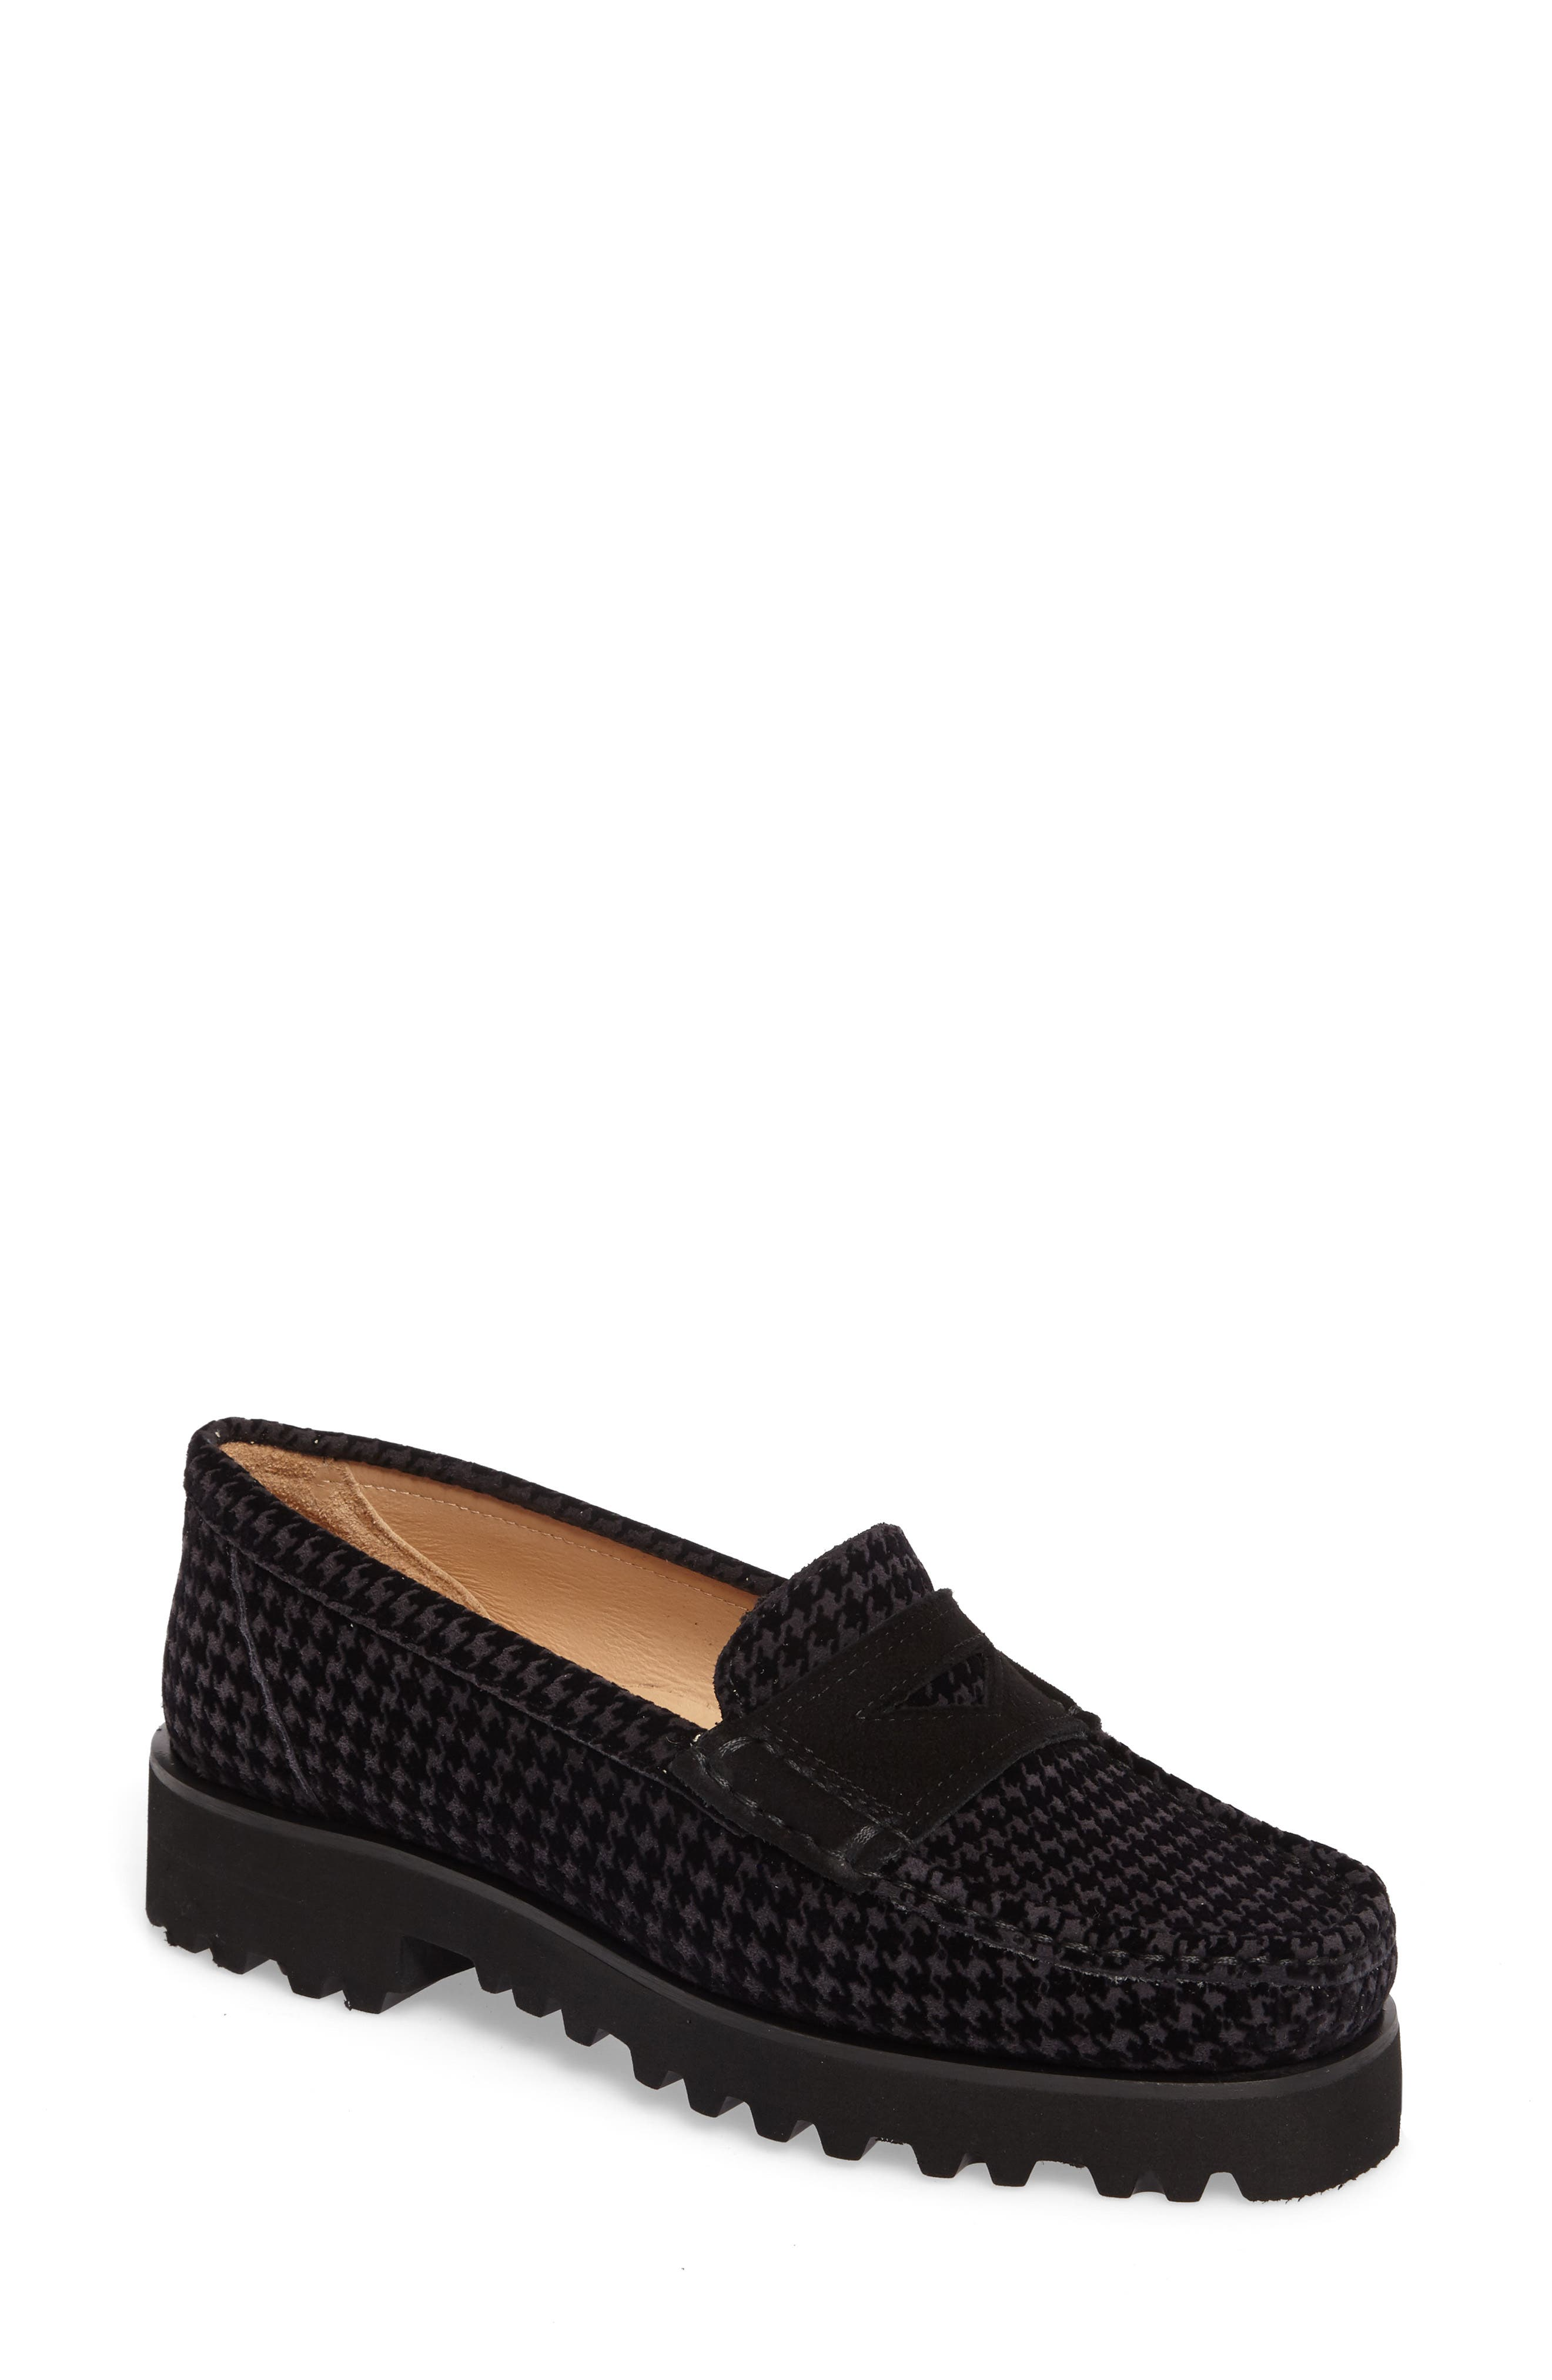 Rita Houndstooth Water Resistant Penny Loafer,                             Main thumbnail 1, color,                             Slate Printed Suede